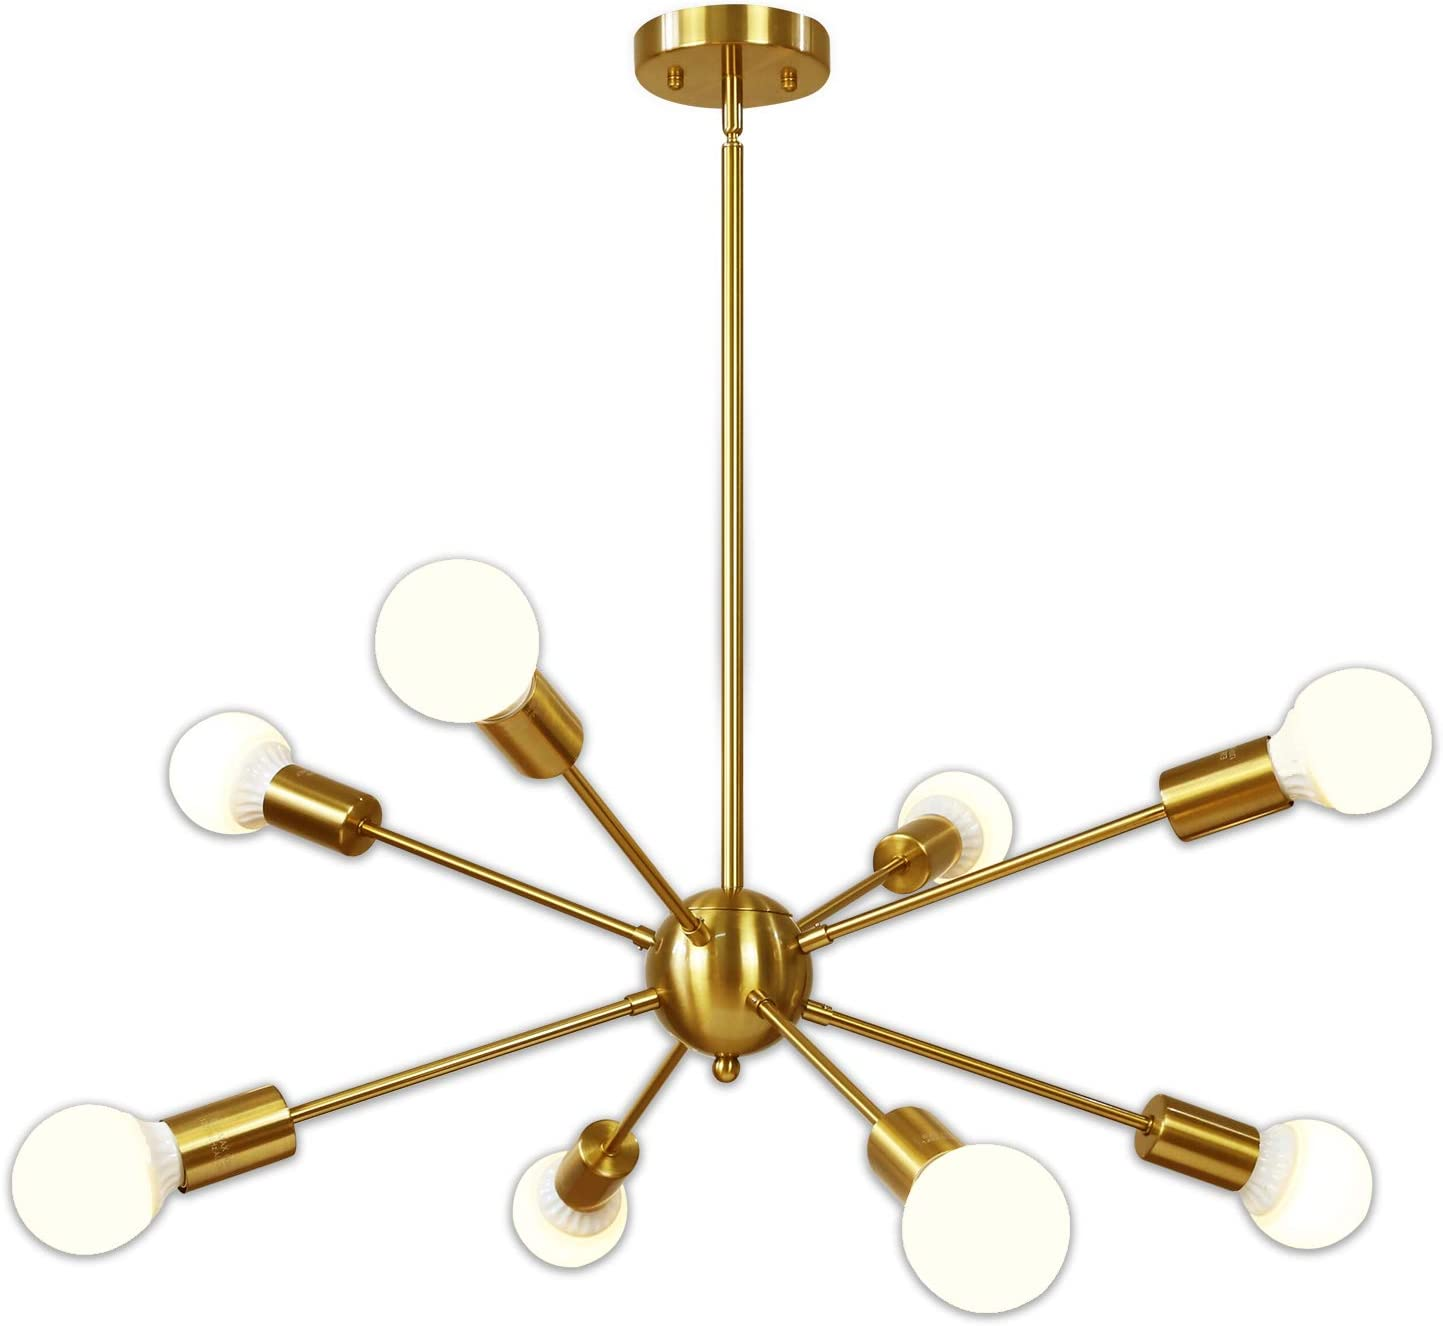 Sputnik Chandelier 8 Light Brushed Brass Pendant Lighting Gold Mid Century Modern Starburst-Style Ceiling Lighting Fixture for Dining Room Kitchen Bedroom Foyer by VINLUZ